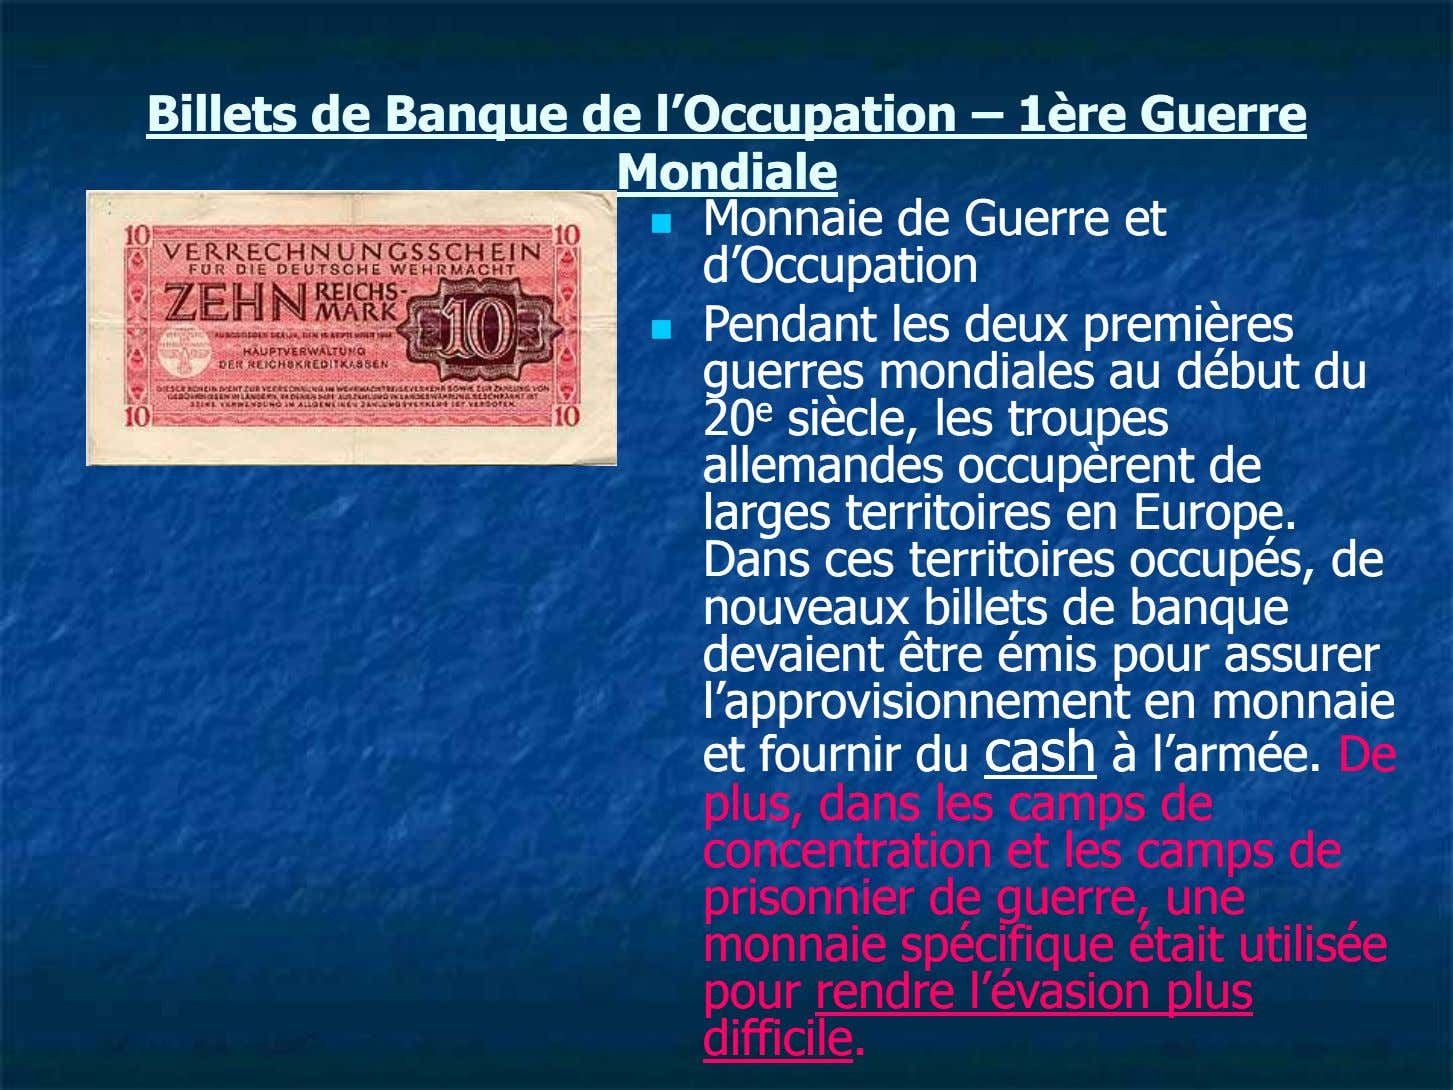 BilletsBillets dede BanqueBanque dede l'Occupationl'Occupation –– 1ère1ère GuerreGuerre MondialeMondiale